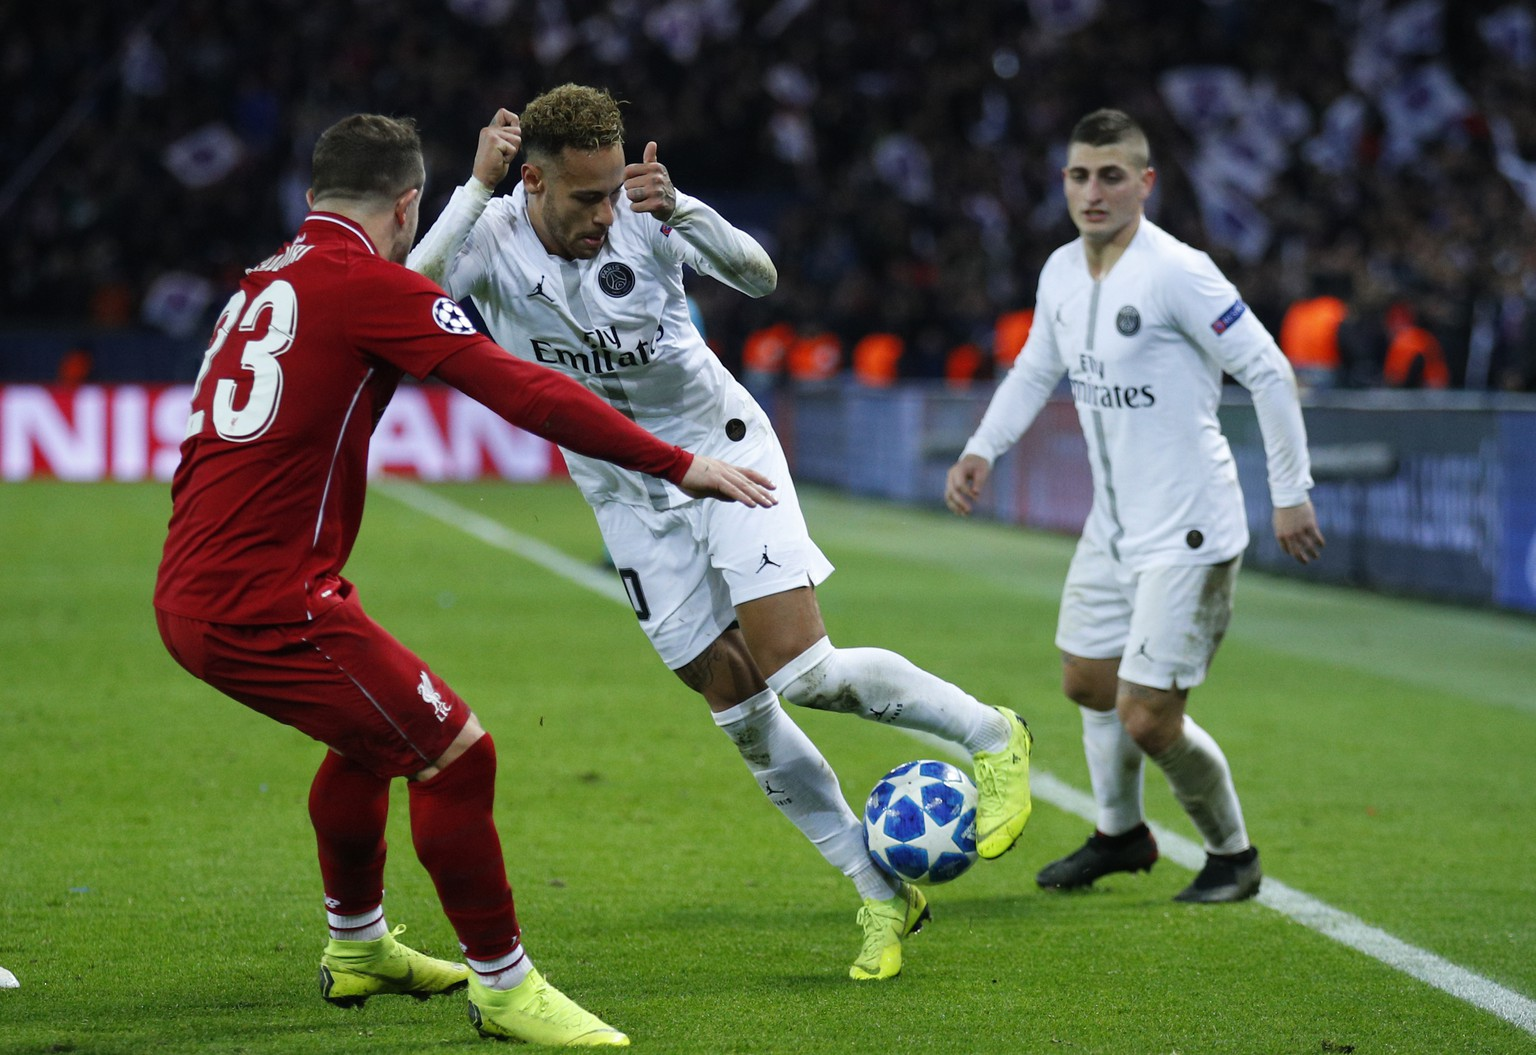 PSG forward Neymar, right, challenges for the ball with Liverpool midfielder Xherdan Shaqiri during a Champions League Group C soccer match between Paris Saint Germain and Liverpool at the Parc des Princes stadium in Paris, Wednesday, Nov. 28, 2018. (AP Photo/Francois Mori)